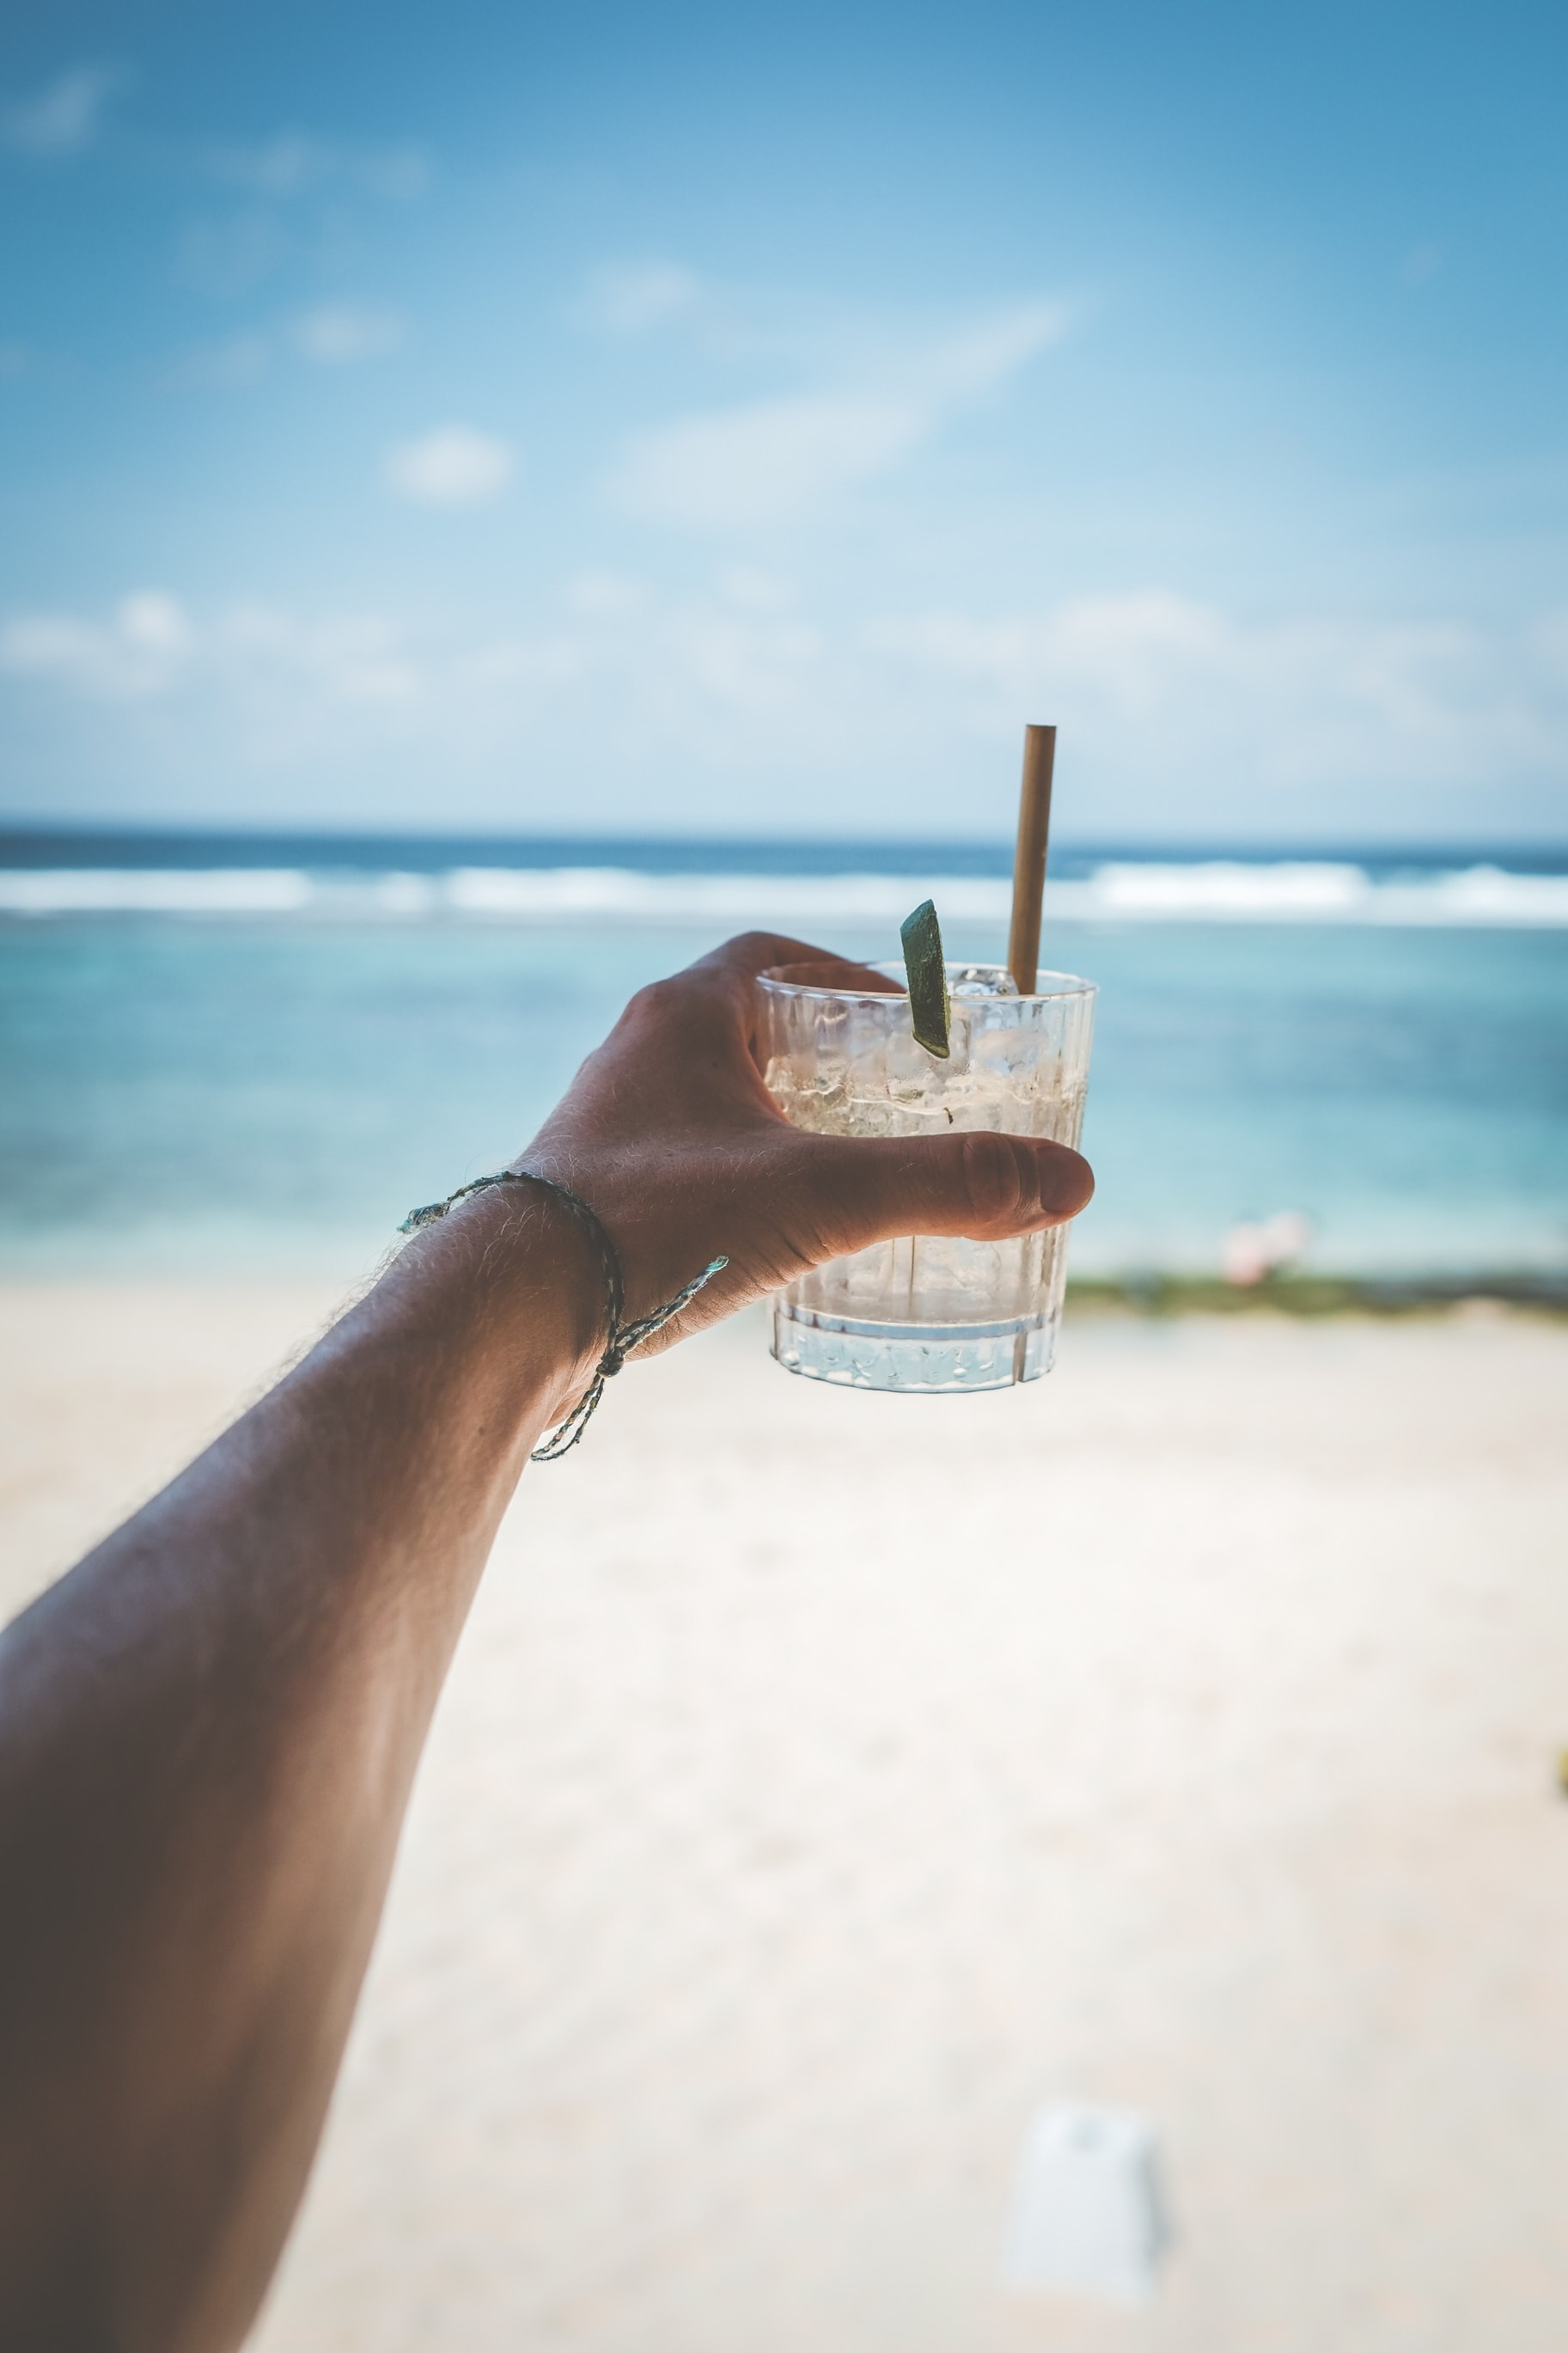 an arm stretched out towards the sea, whilst on the beach, holding a short glass of ice cold water with flavour sticks/straws.